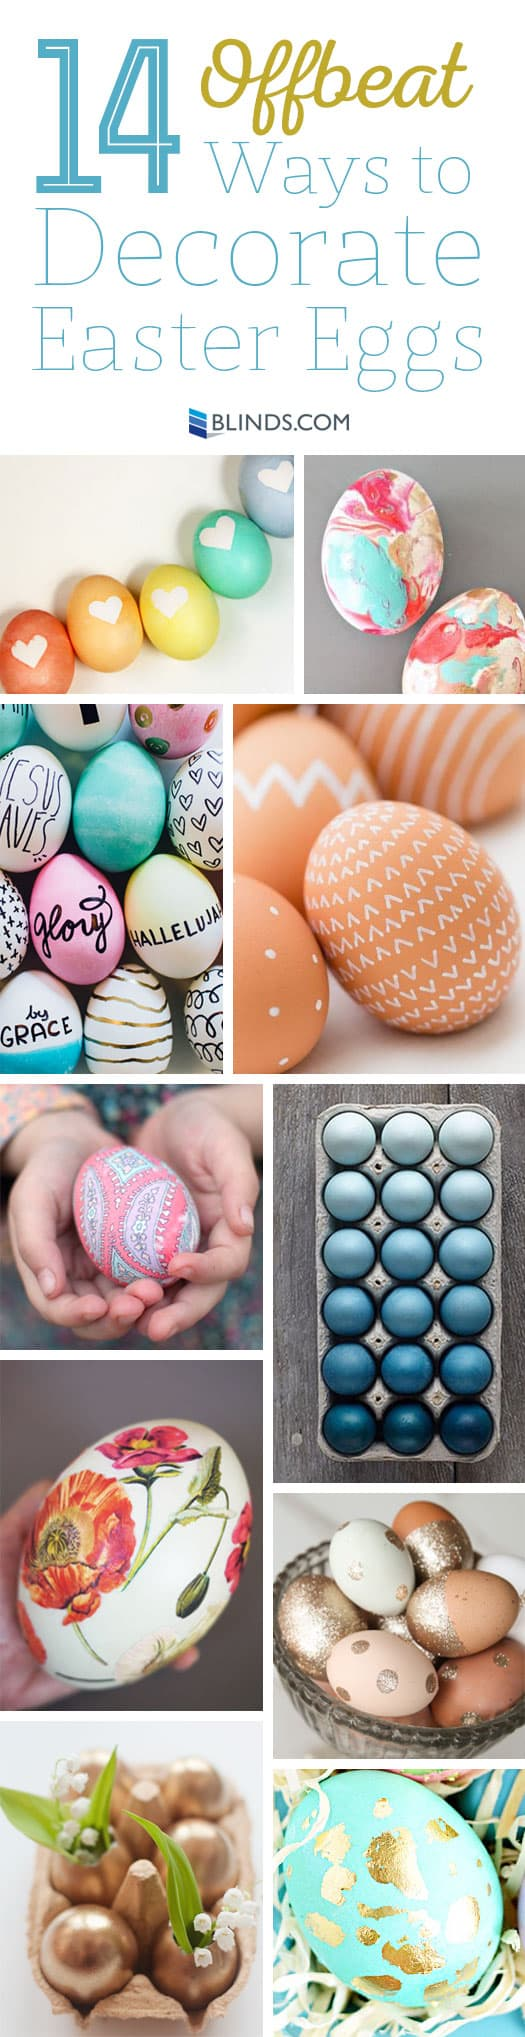 14 Offbeat Ways to decorate easter eggs